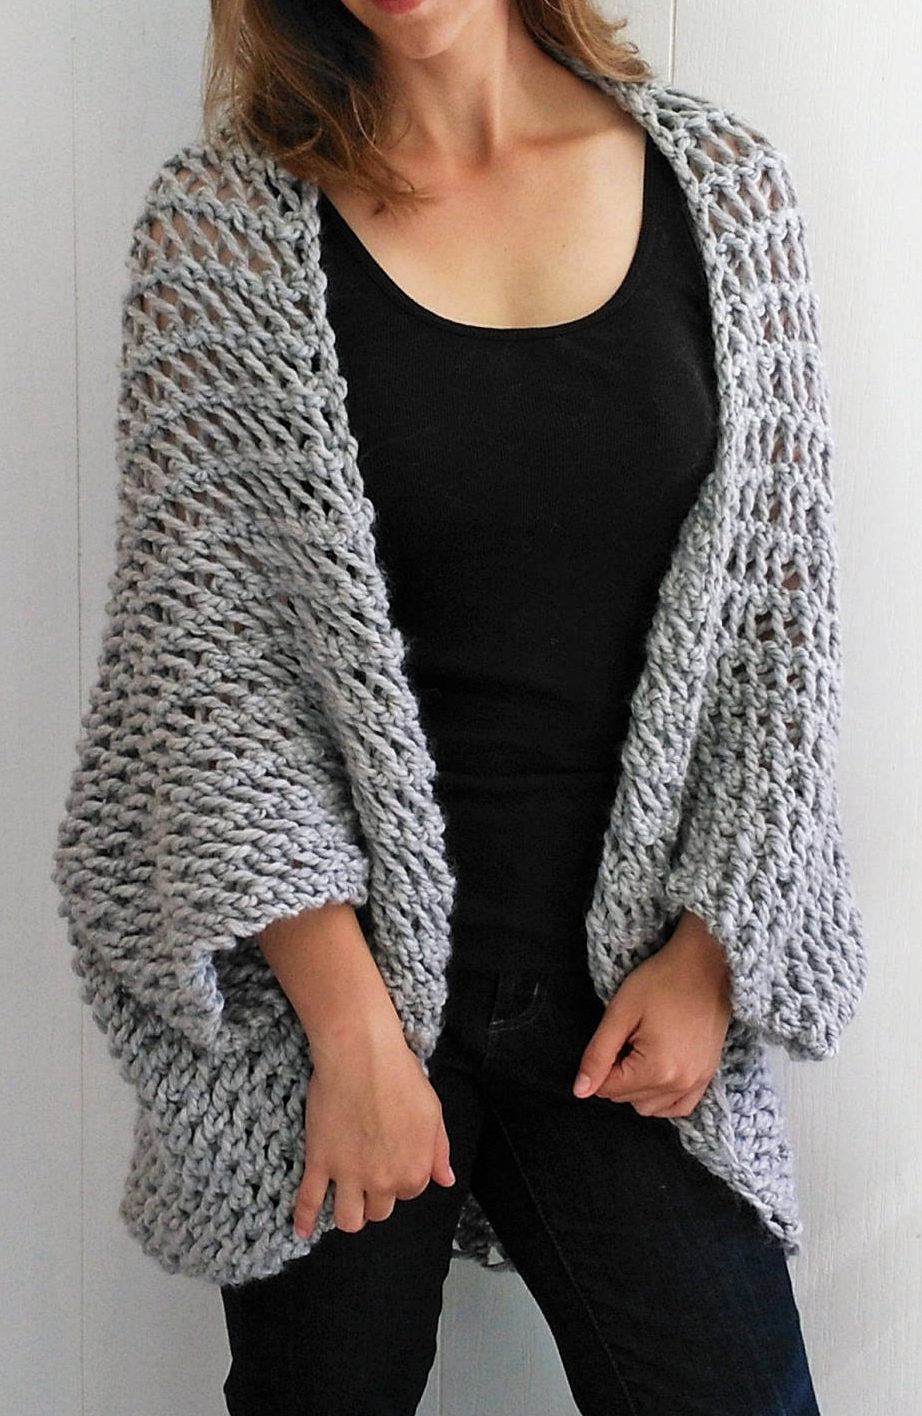 Cardigan Sweater Knitting Pattern Easy Cardigan Knitting Patterns In The Loop Knitting